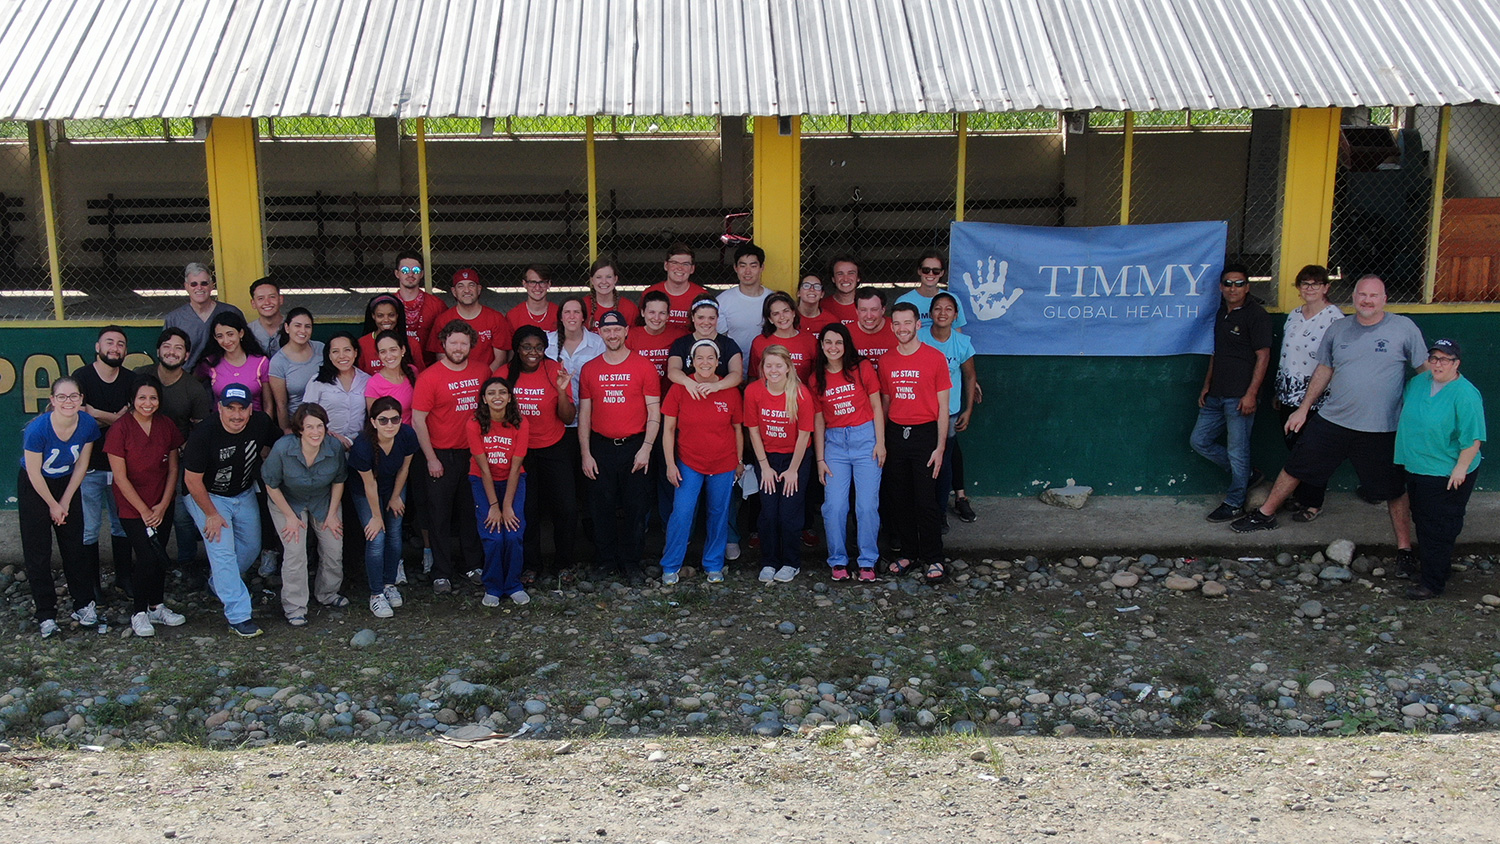 A team of students and leaders wearing NCState shirts stand outside a rural clinic in Ecuador with a TImmy Global Health banner